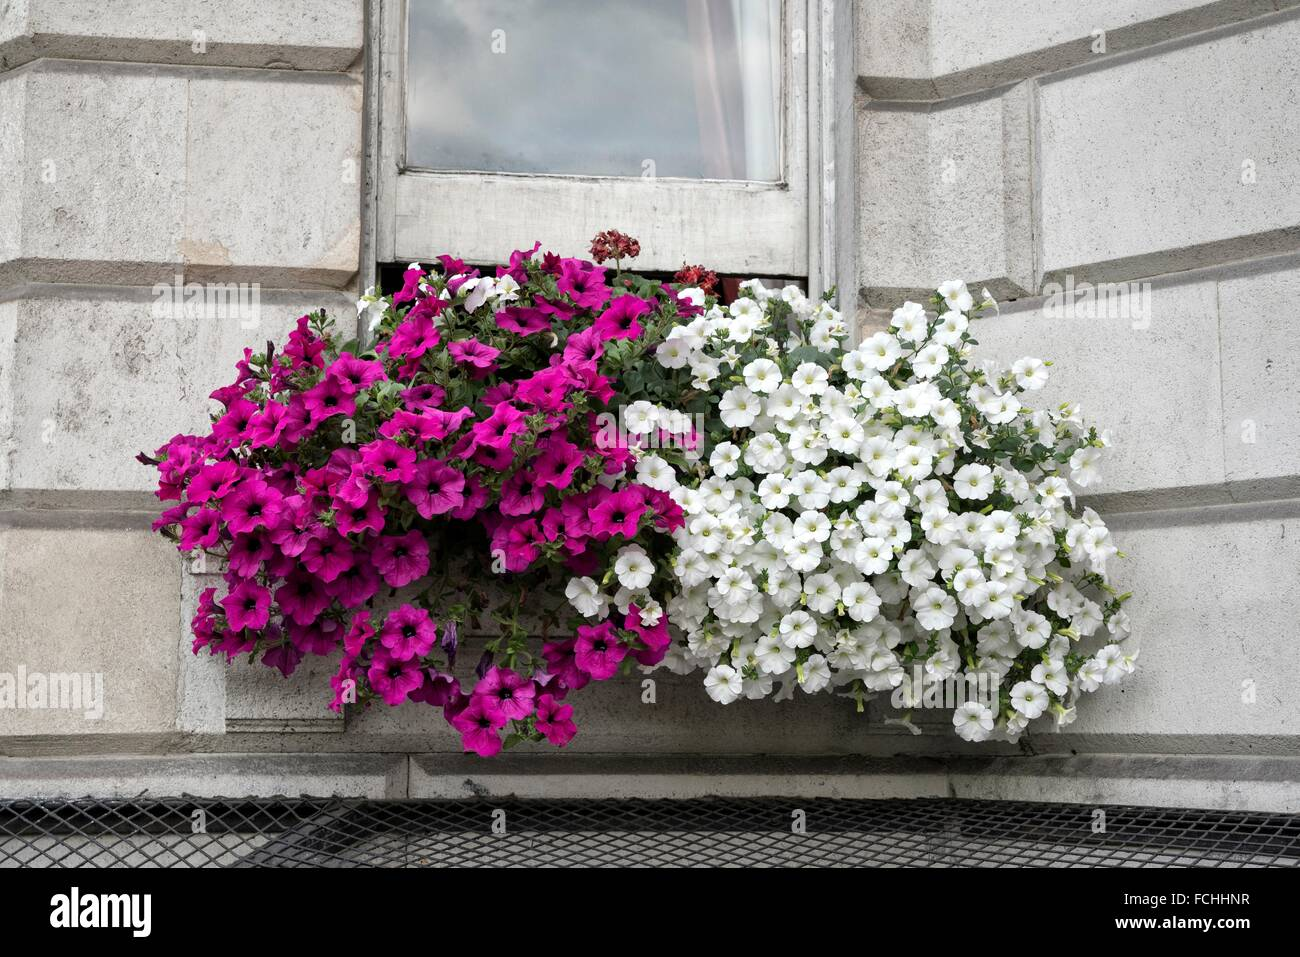 Beautiful Flower Box on a Piccadilly Residential Building, London, England. - Stock Image